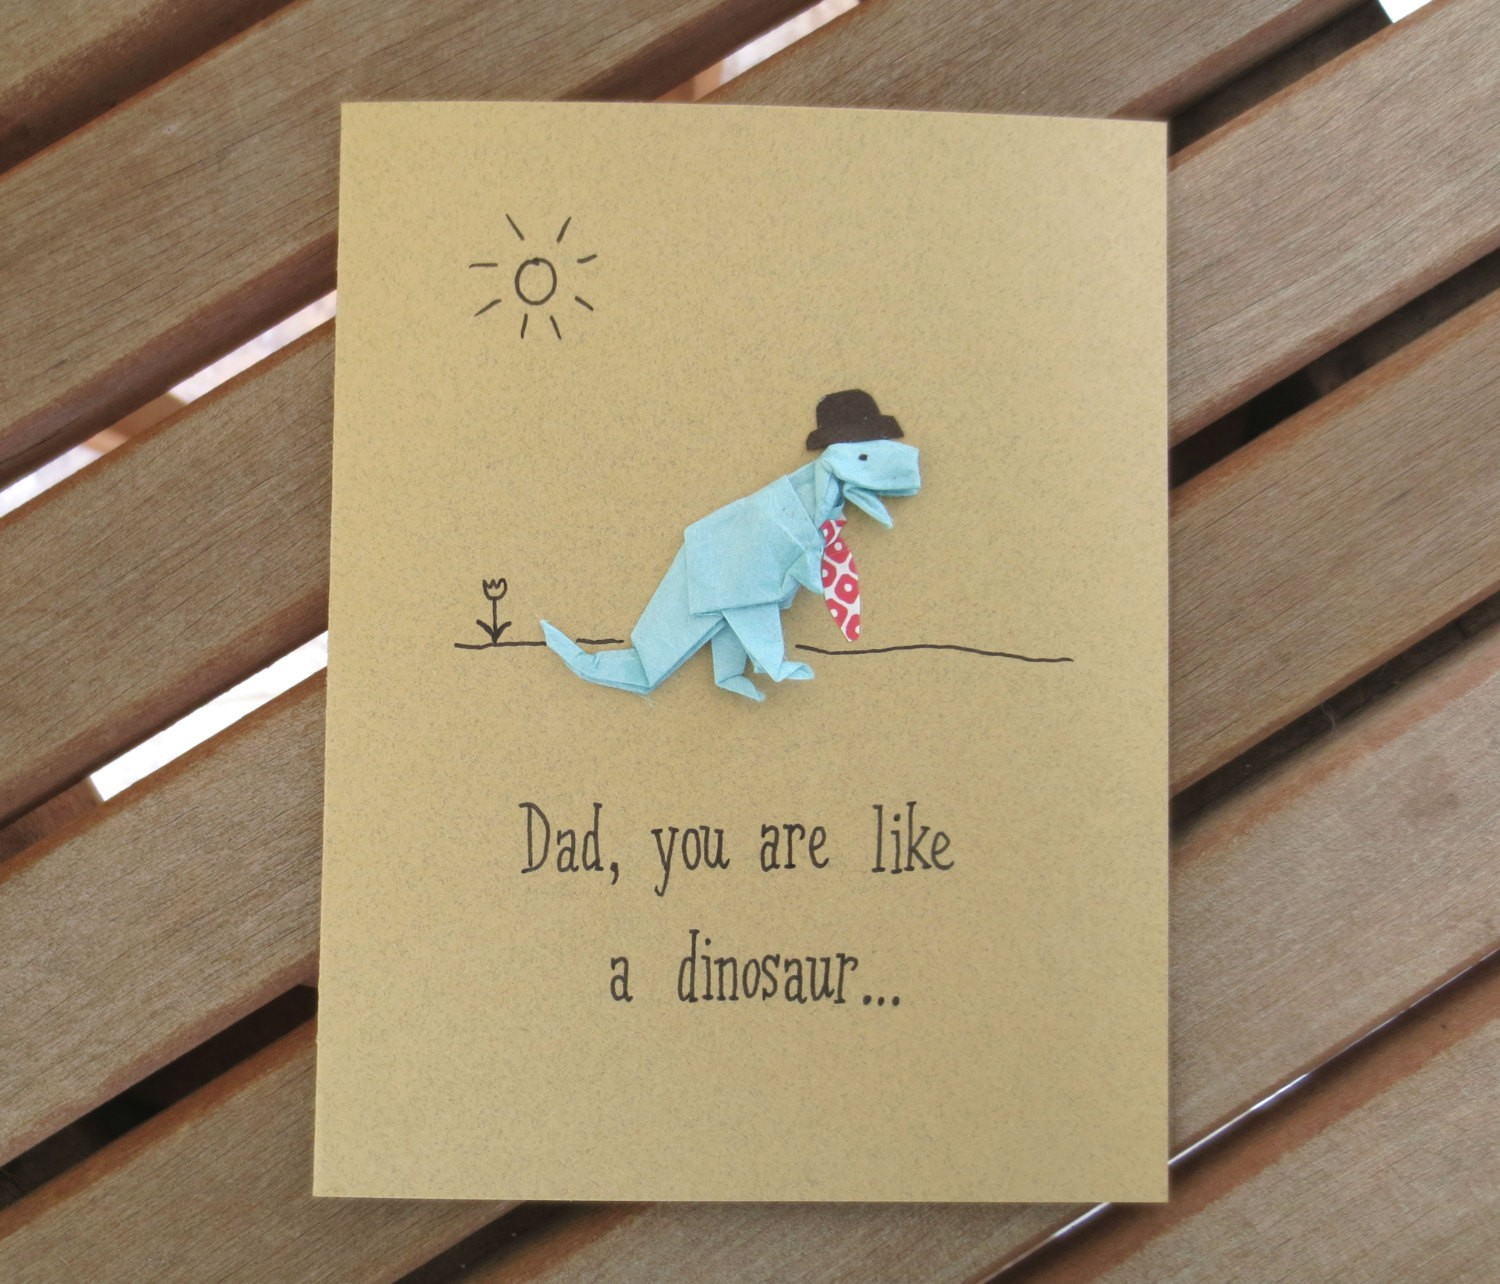 birthday card ideas for papa ; 2014%2520funny%2520fathers%2520day%2520card%2520funny%2520dad%2520card%2520dad%2520birthday%2520card%2520card%2520for%2520dad%2520happy%2520fathers%2520day%2520card%2520dad-f09787